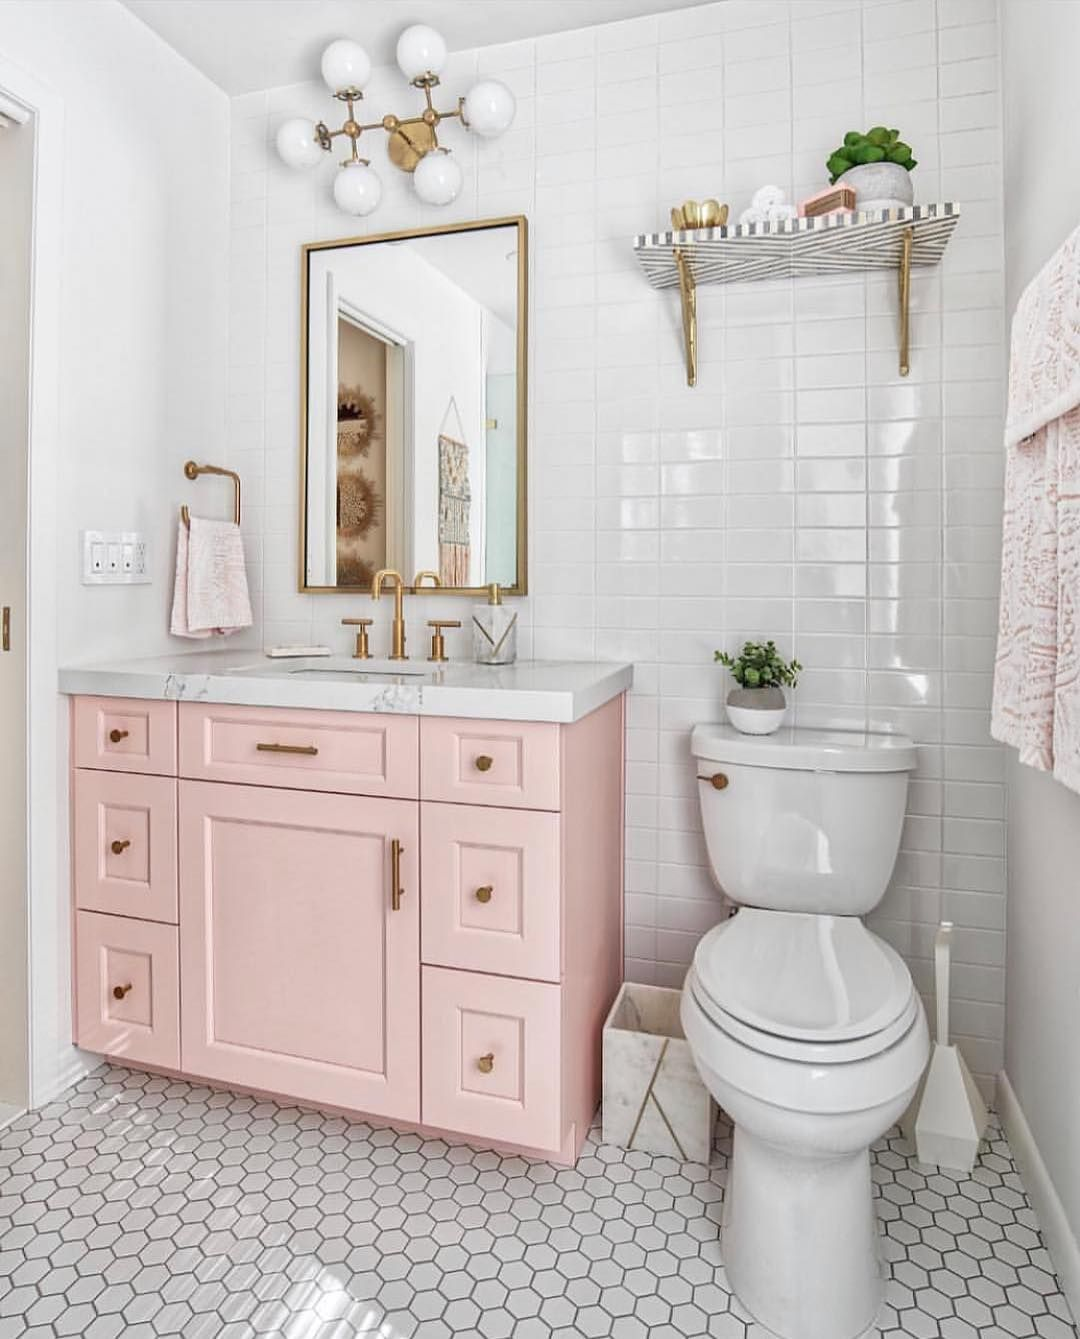 """Photo of Meko Fountain, Realtor🌟🌟🌟🌟🌟 on Instagram: """"Sometimes a hint of pink can be done just right💞"""""""